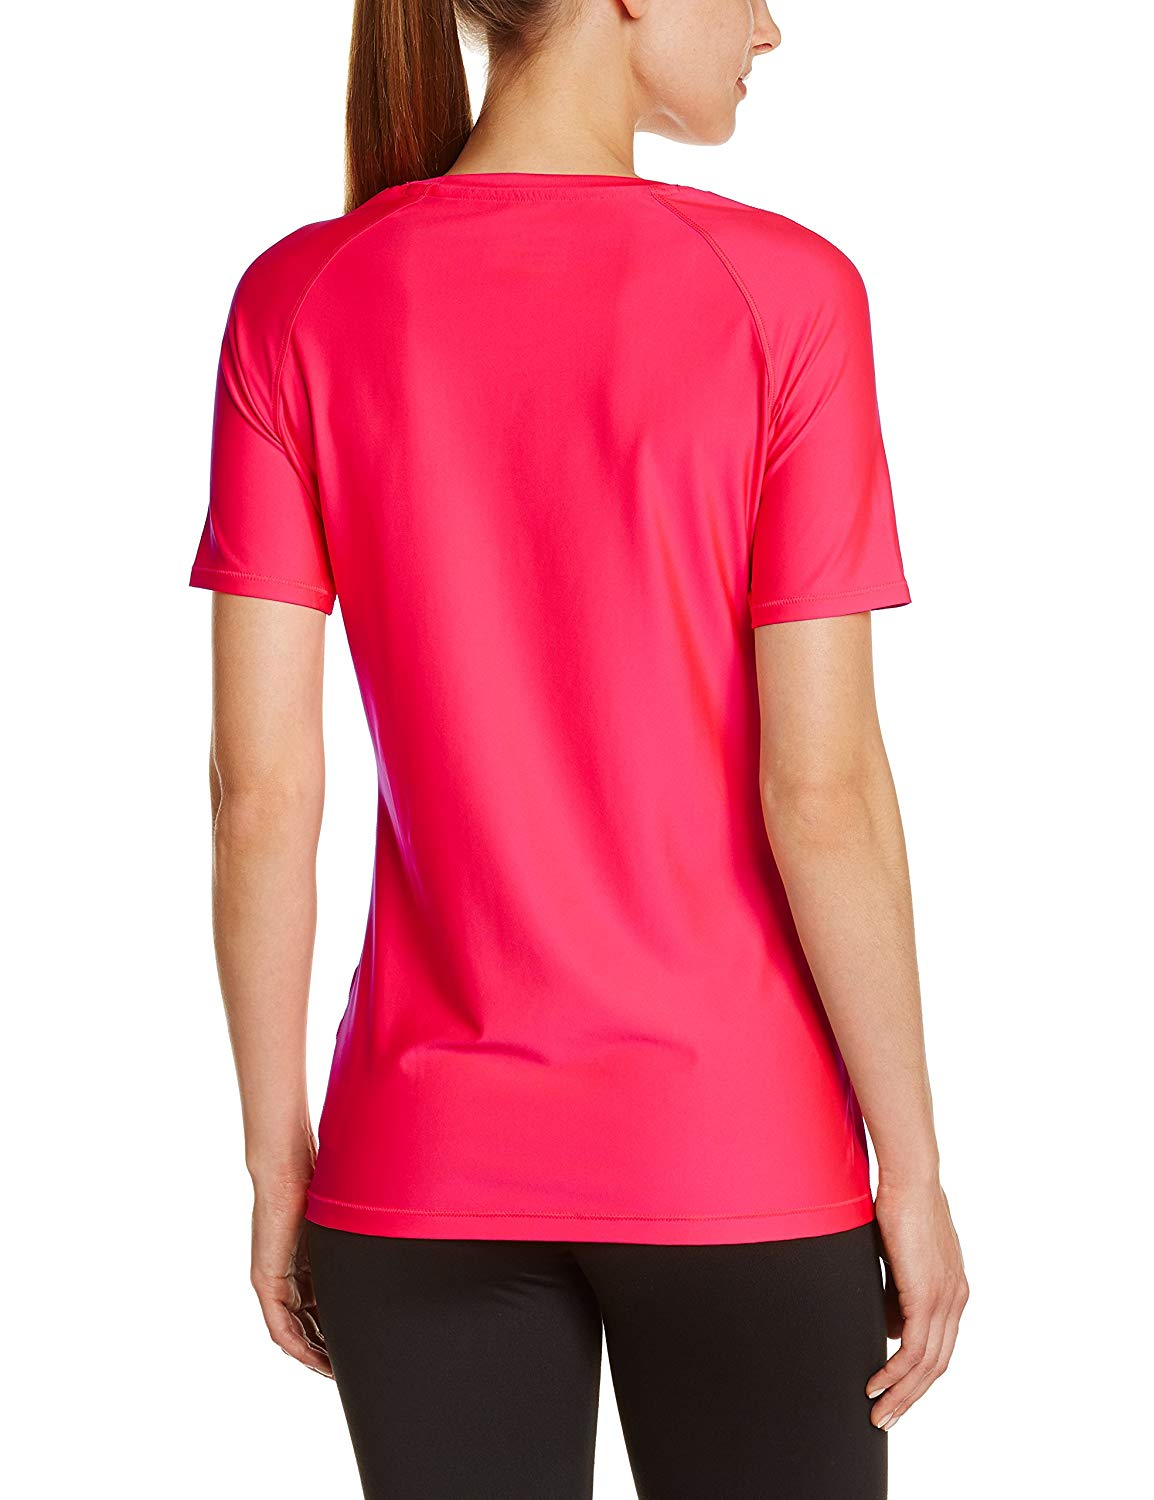 Under Armour HeatGear Alpha Ladies Short-Sleeved Sports T-Shirt